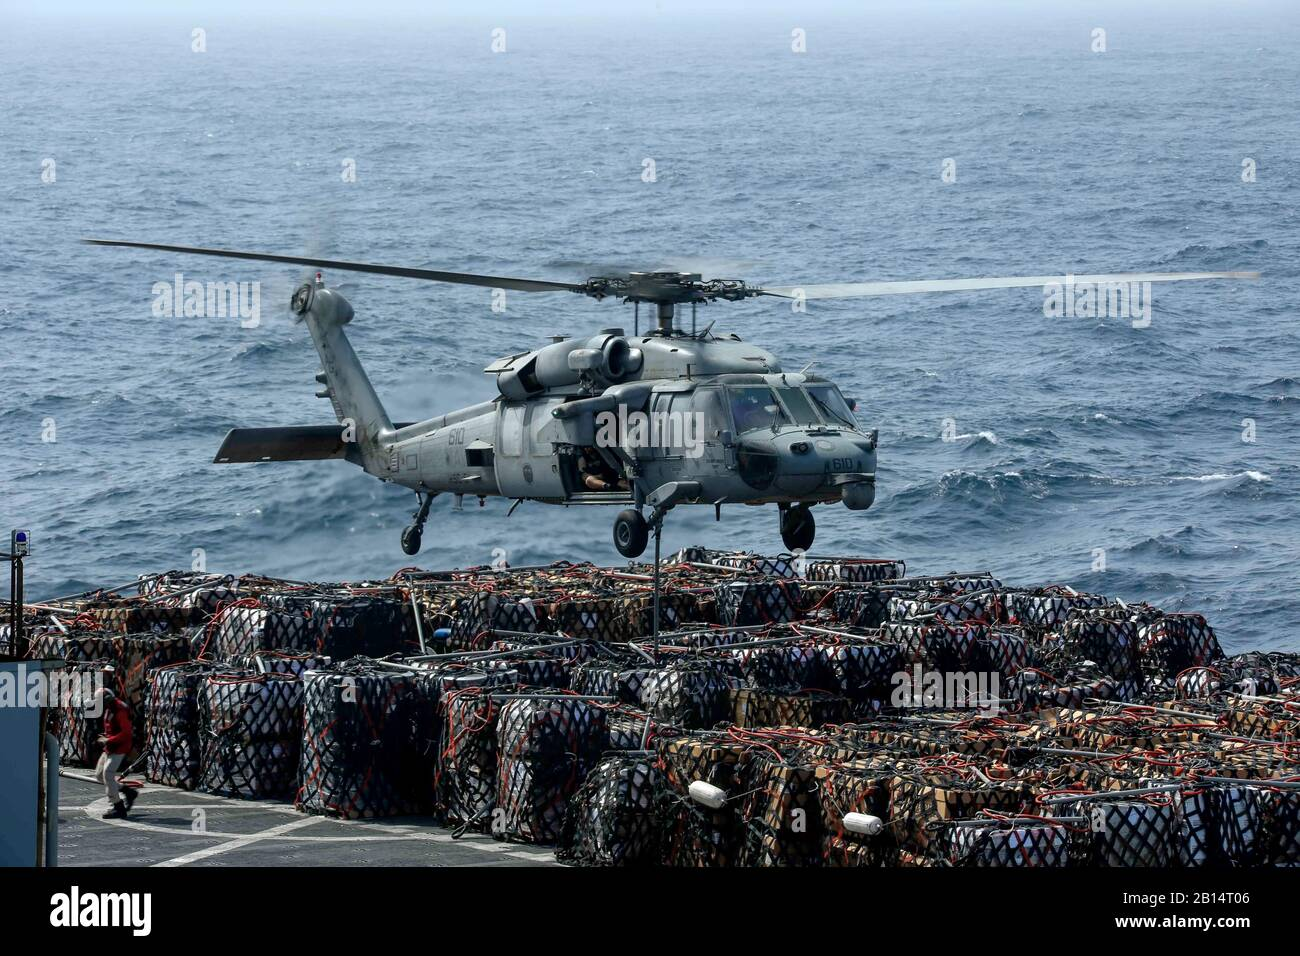 190621-N-FK070-1312  ARABIAN SEA (June 21, 2019) An MH-60S Sea Hawk helicopter from the Nightdippers of Helicopter Sea Combat Squadron (HSC) 5 transports cargo from the dry cargo and ammunition ship USNS Alan Shepard (T-AKE 3) to the Nimitz-class aircraft carrier USS Abraham Lincoln (CVN 72) during a vertical replenishment-at-sea. The Abraham Lincoln Carrier Strike Group is deployed to the U.S. 5th Fleet area of operations in support of naval operations to ensure maritime stability and security in the Central Region, connecting the Mediterranean and the Pacific through the western Indian Ocean Stock Photo